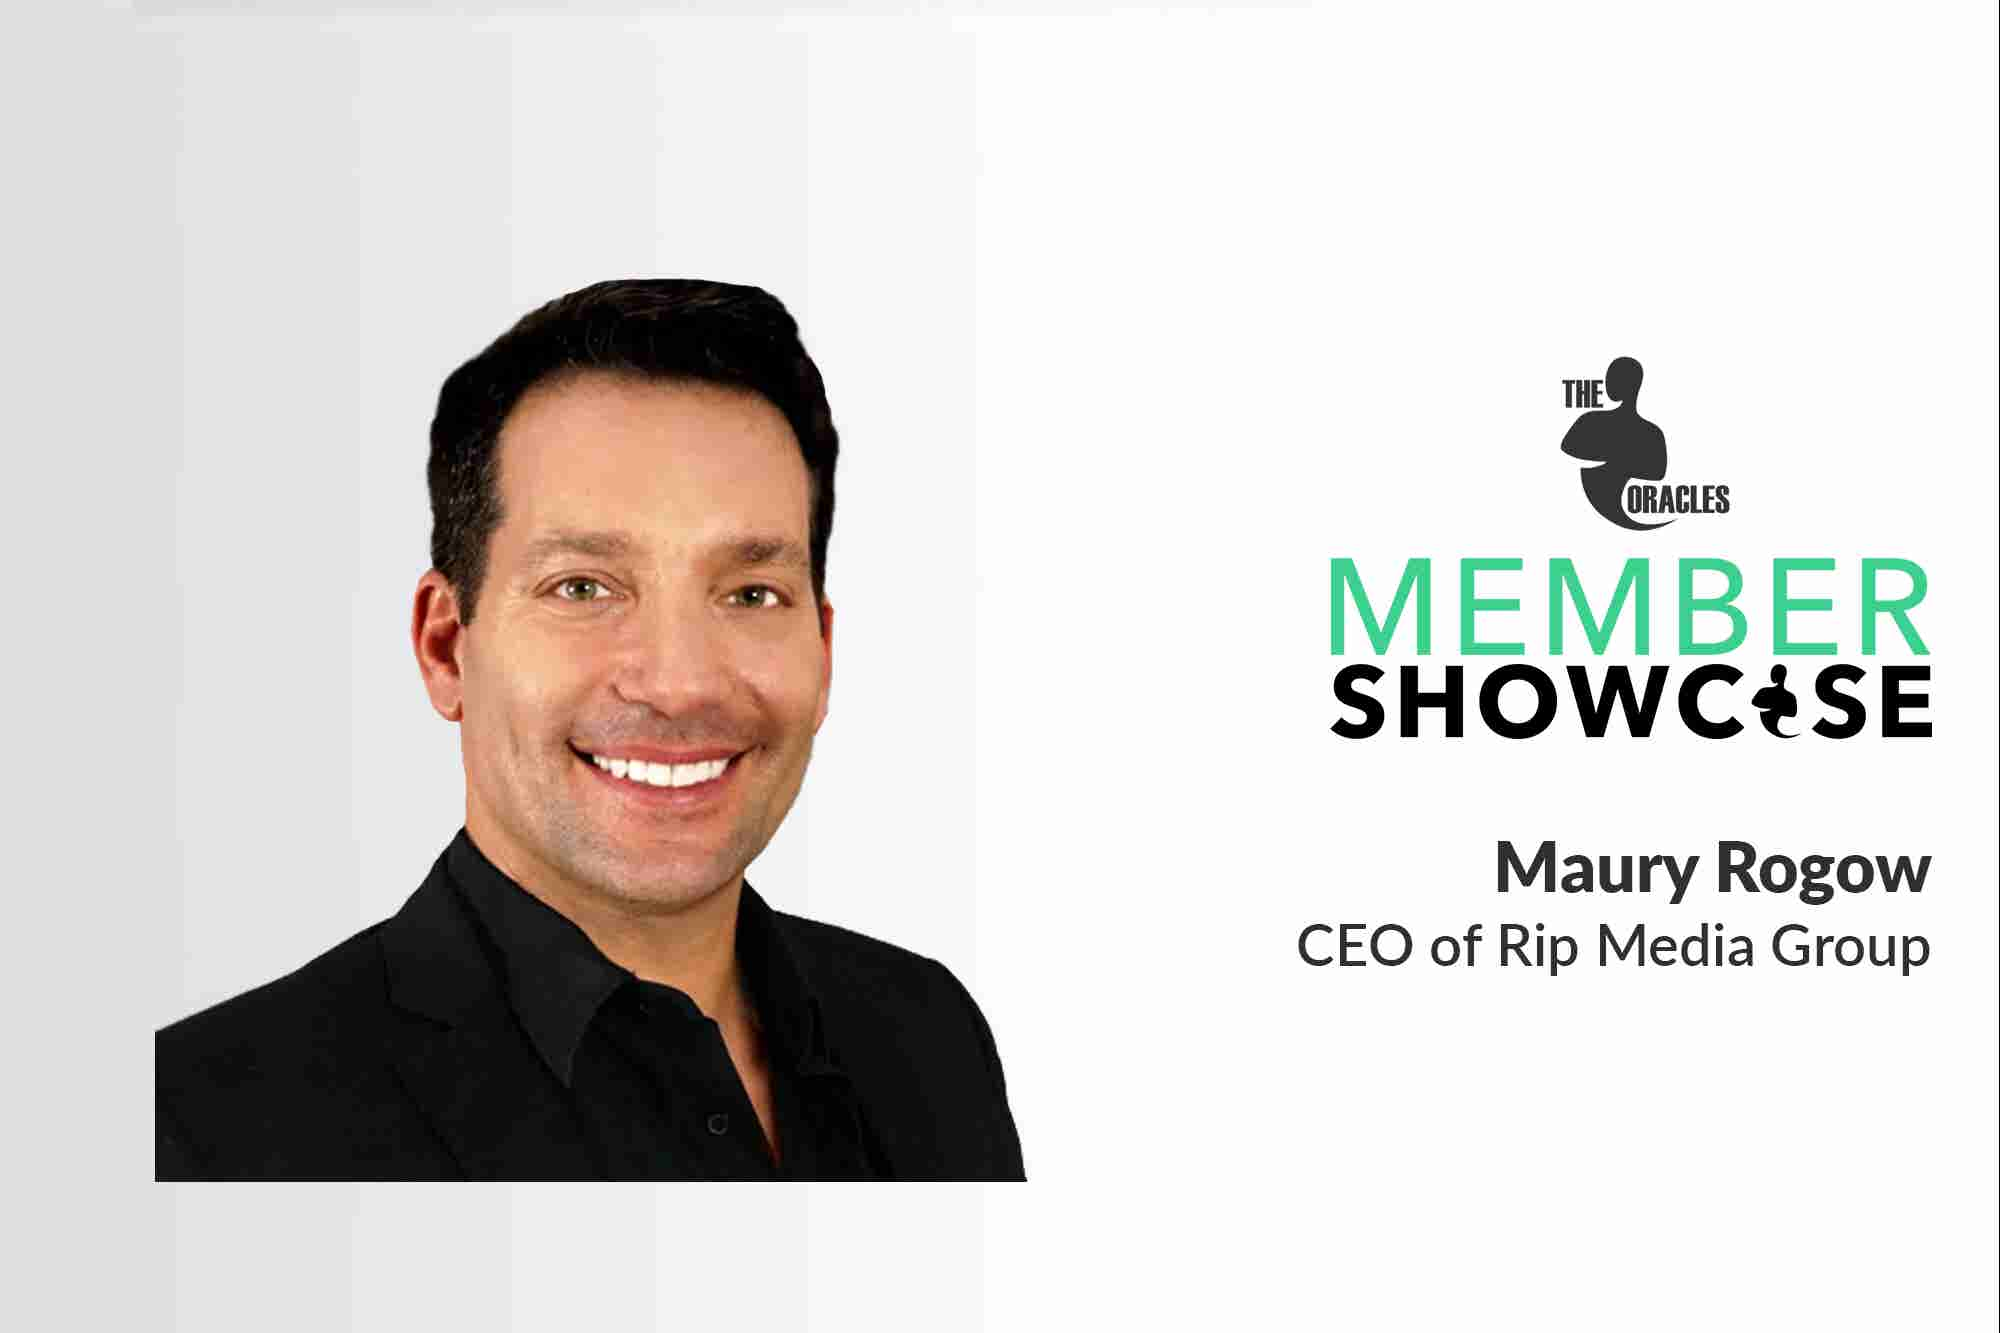 Maury Rogow on Powerful Storytelling That Sells